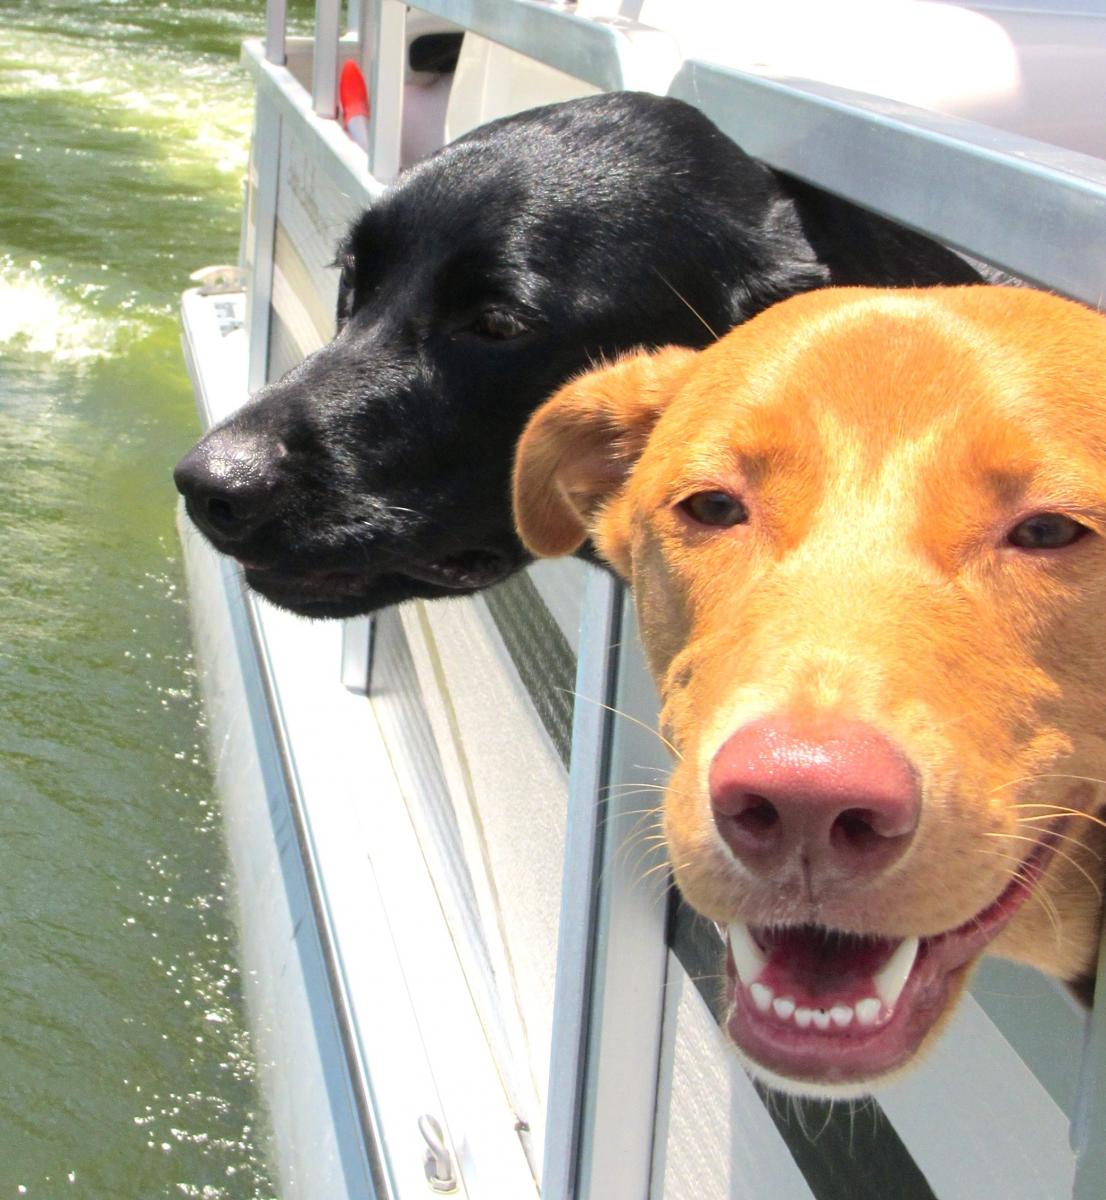 More dogs on a boat